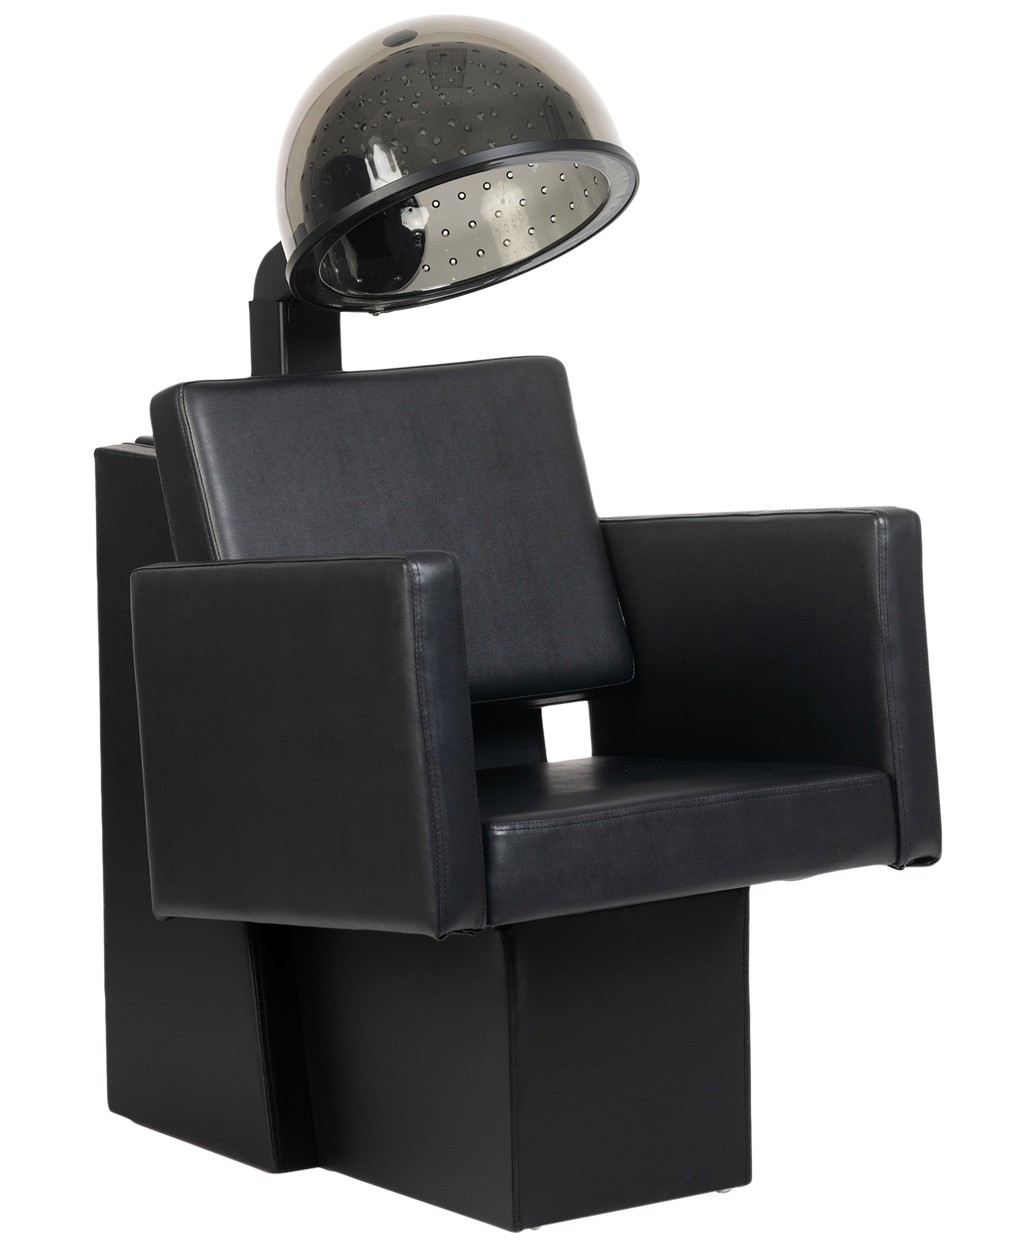 Aria Dryer & Chair Combo